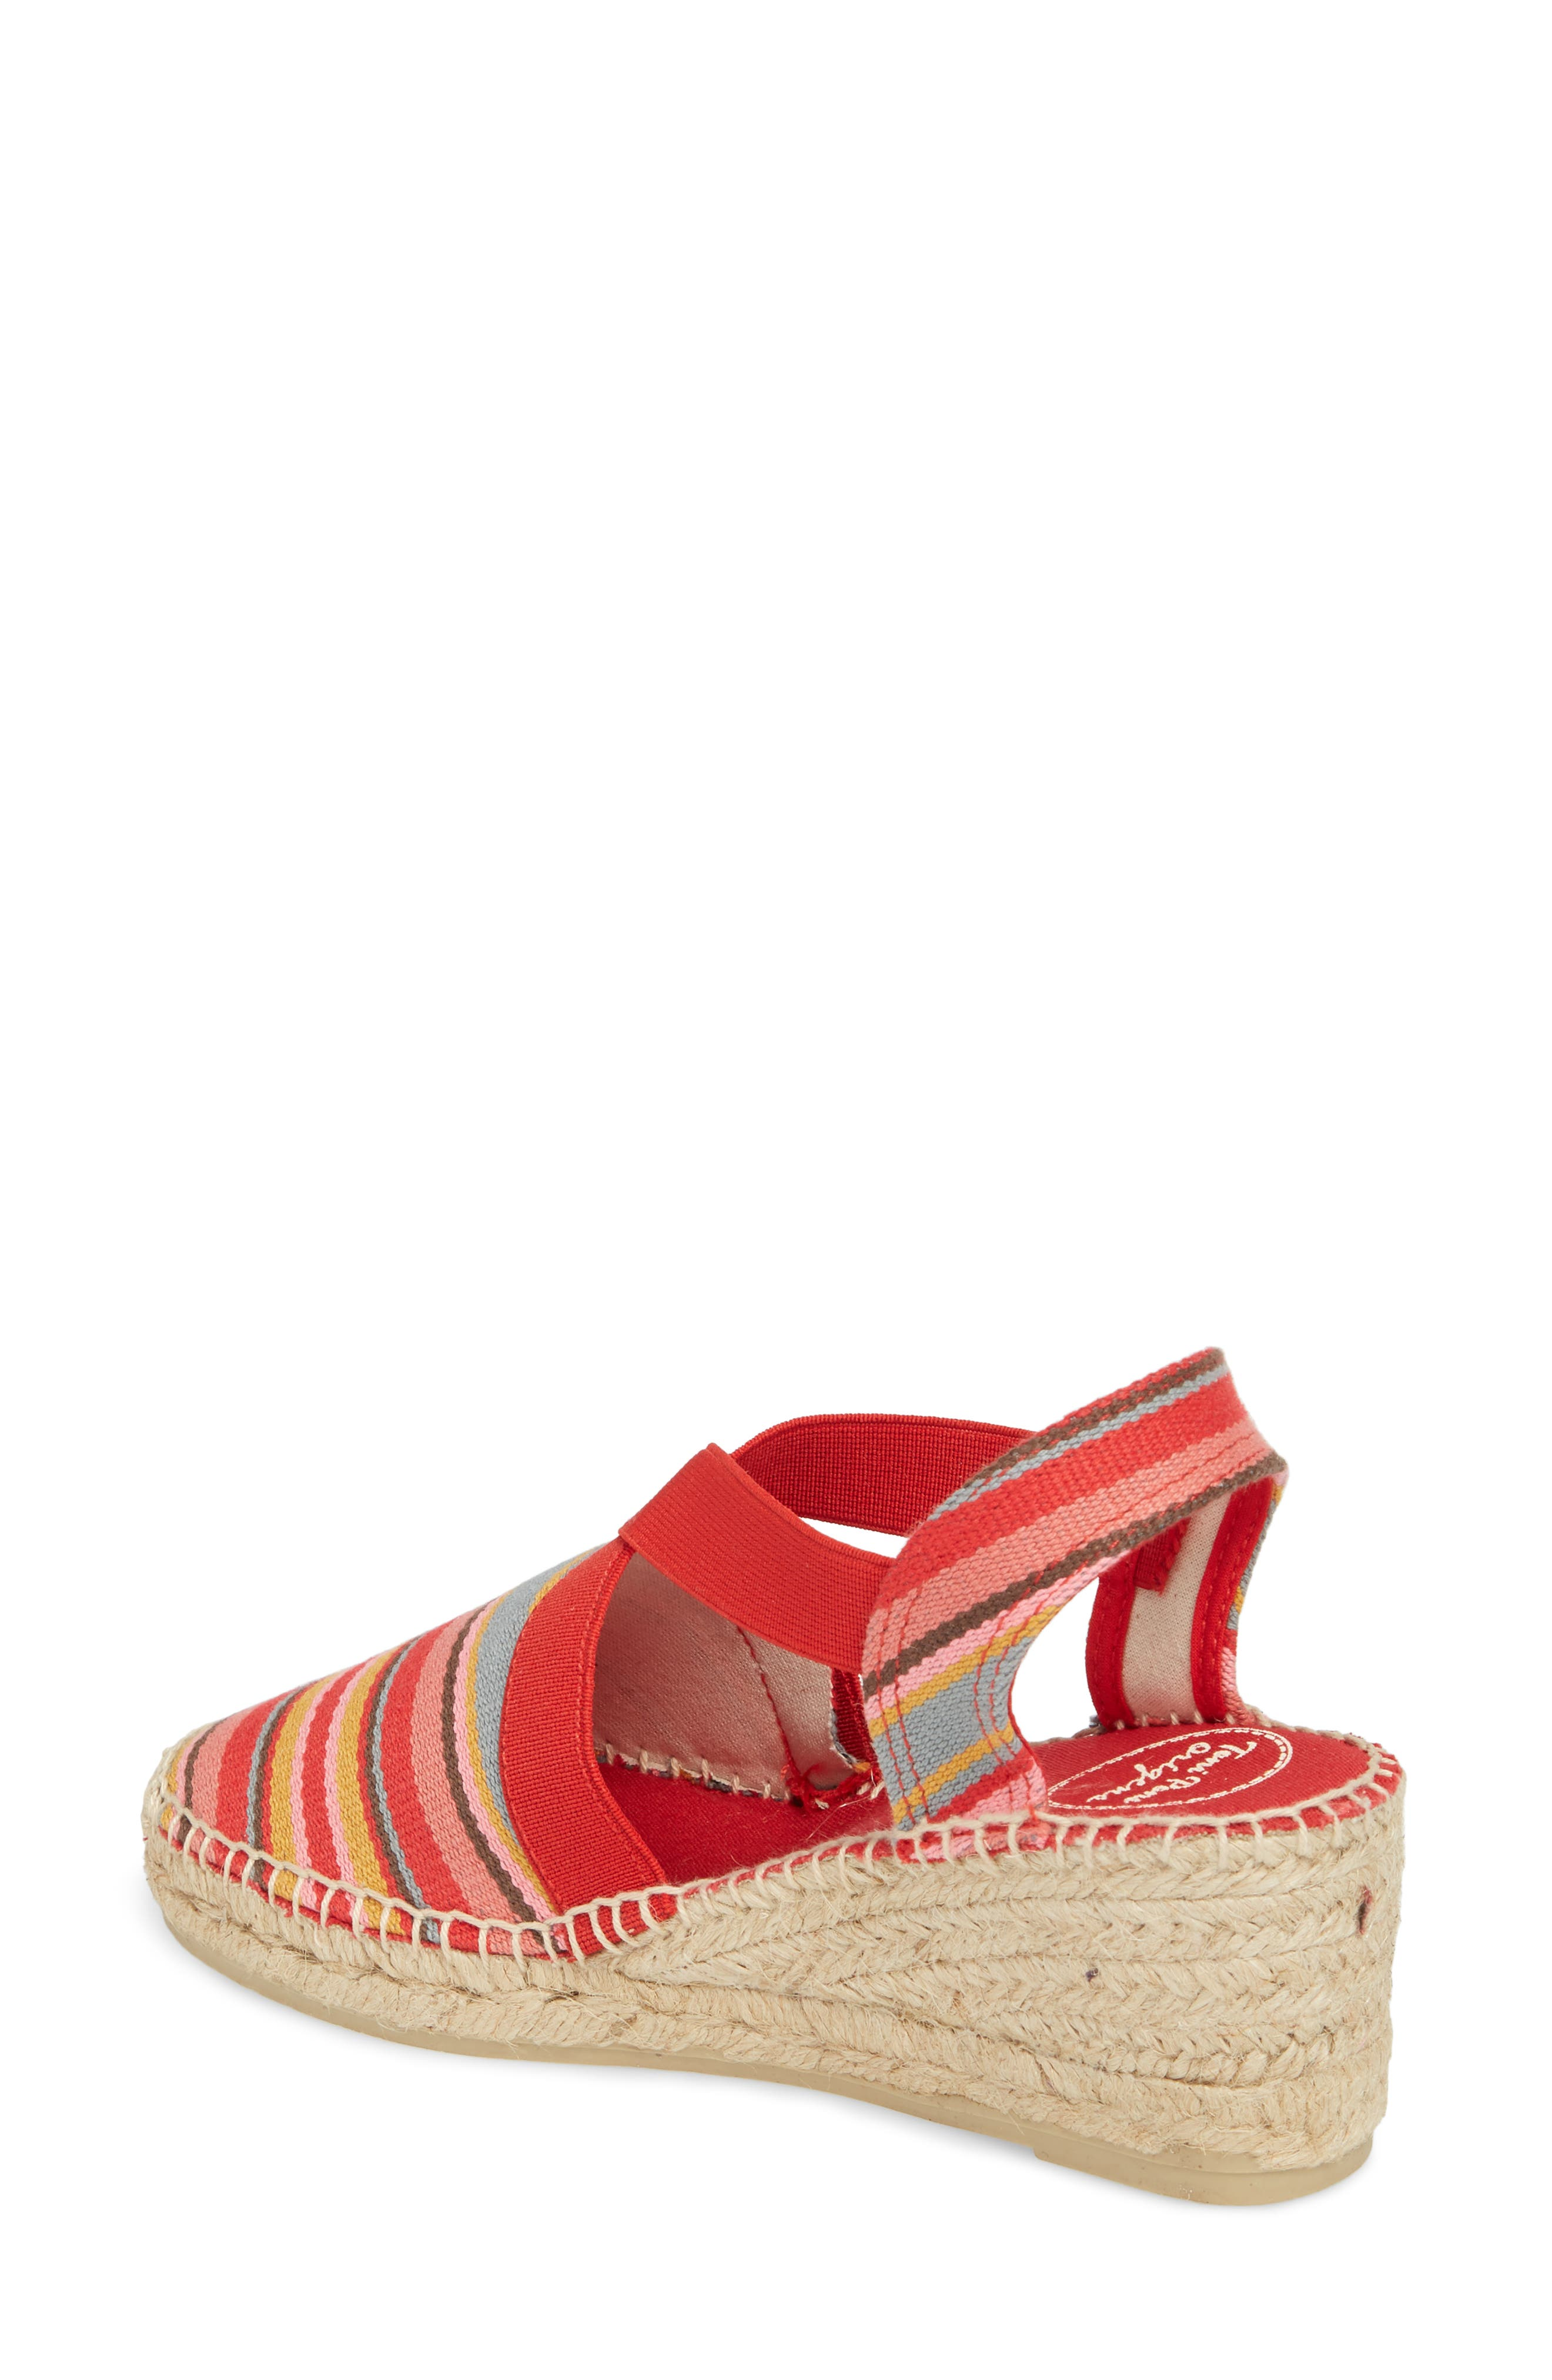 'Tarbes' Espadrille Wedge Sandal,                             Alternate thumbnail 2, color,                             Red Fabric